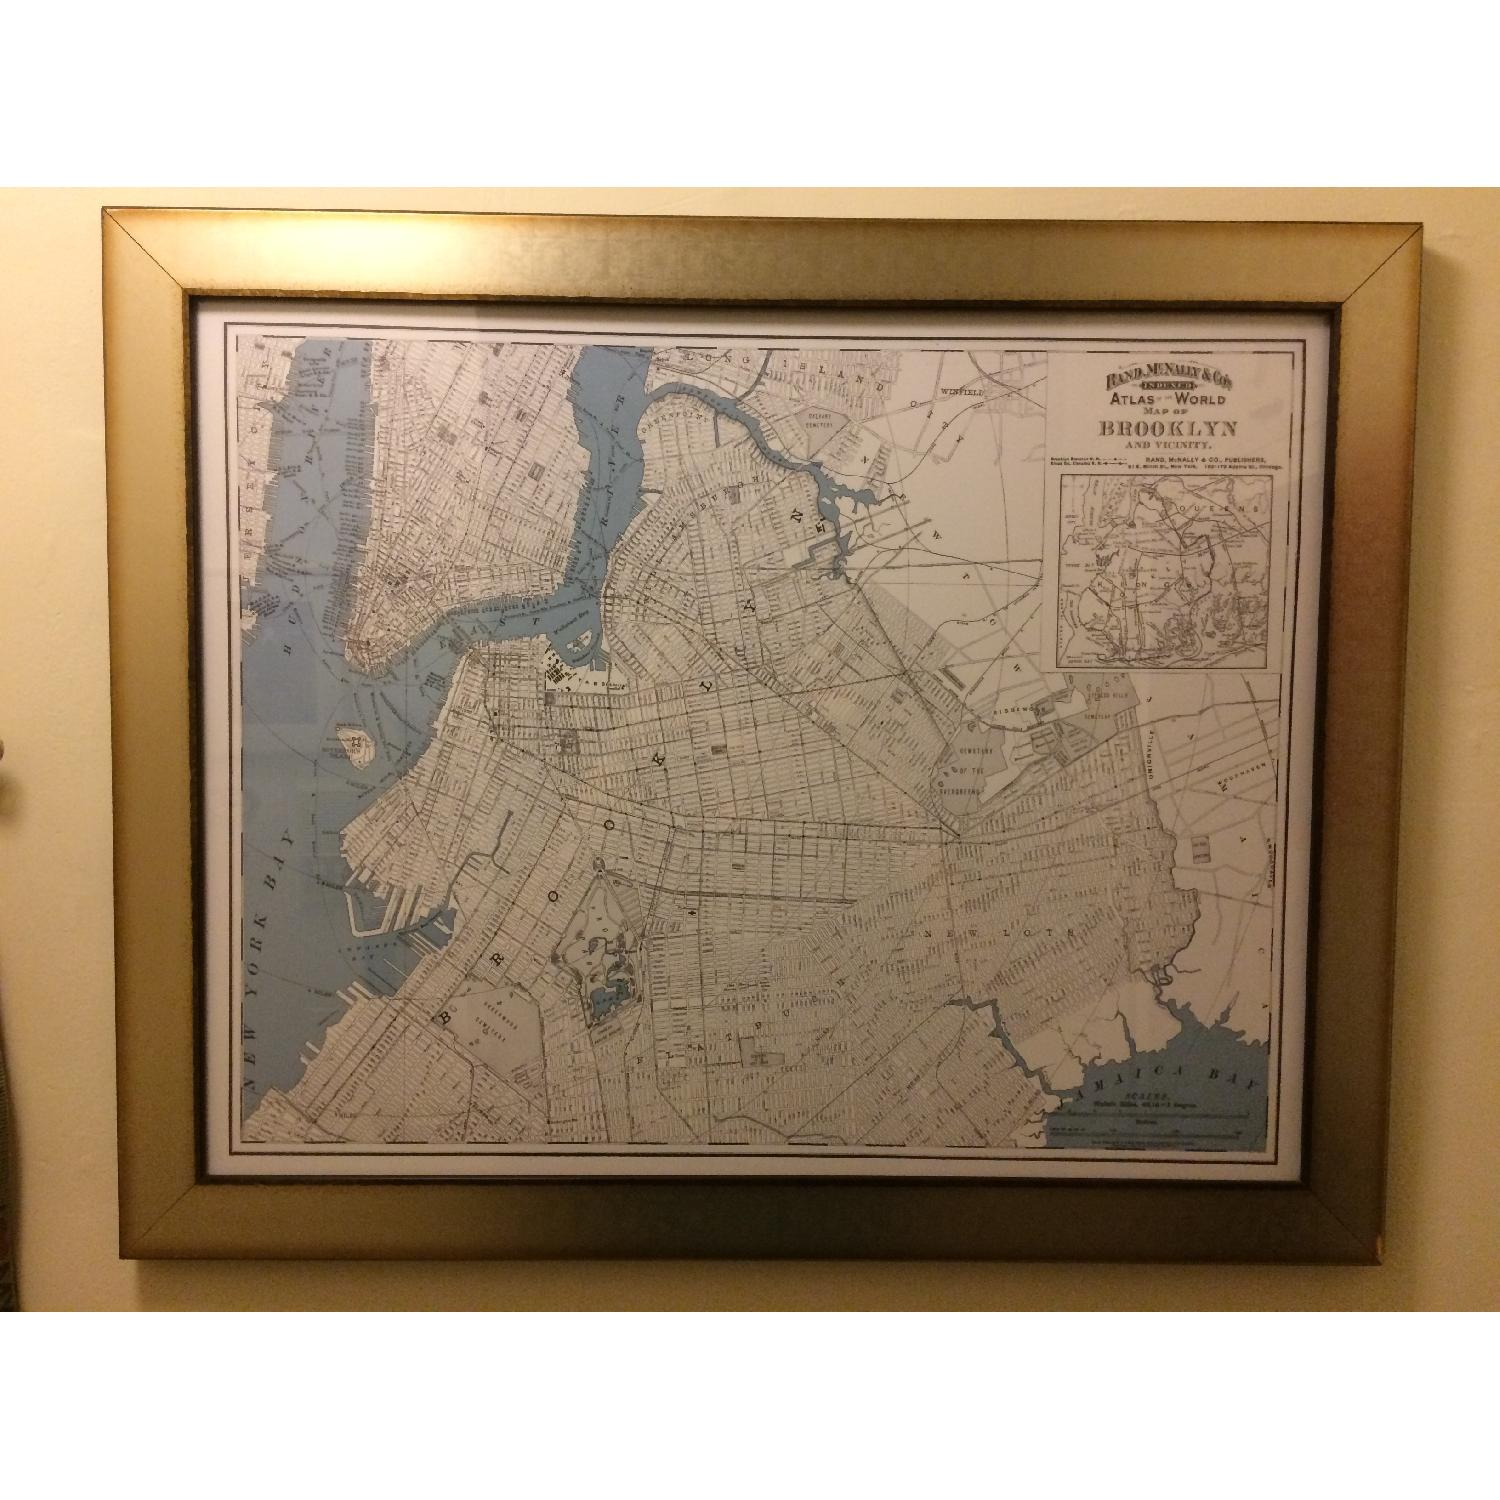 One Kings Lane Historic Brooklyn Map in Burnished Silver Frame - image-2